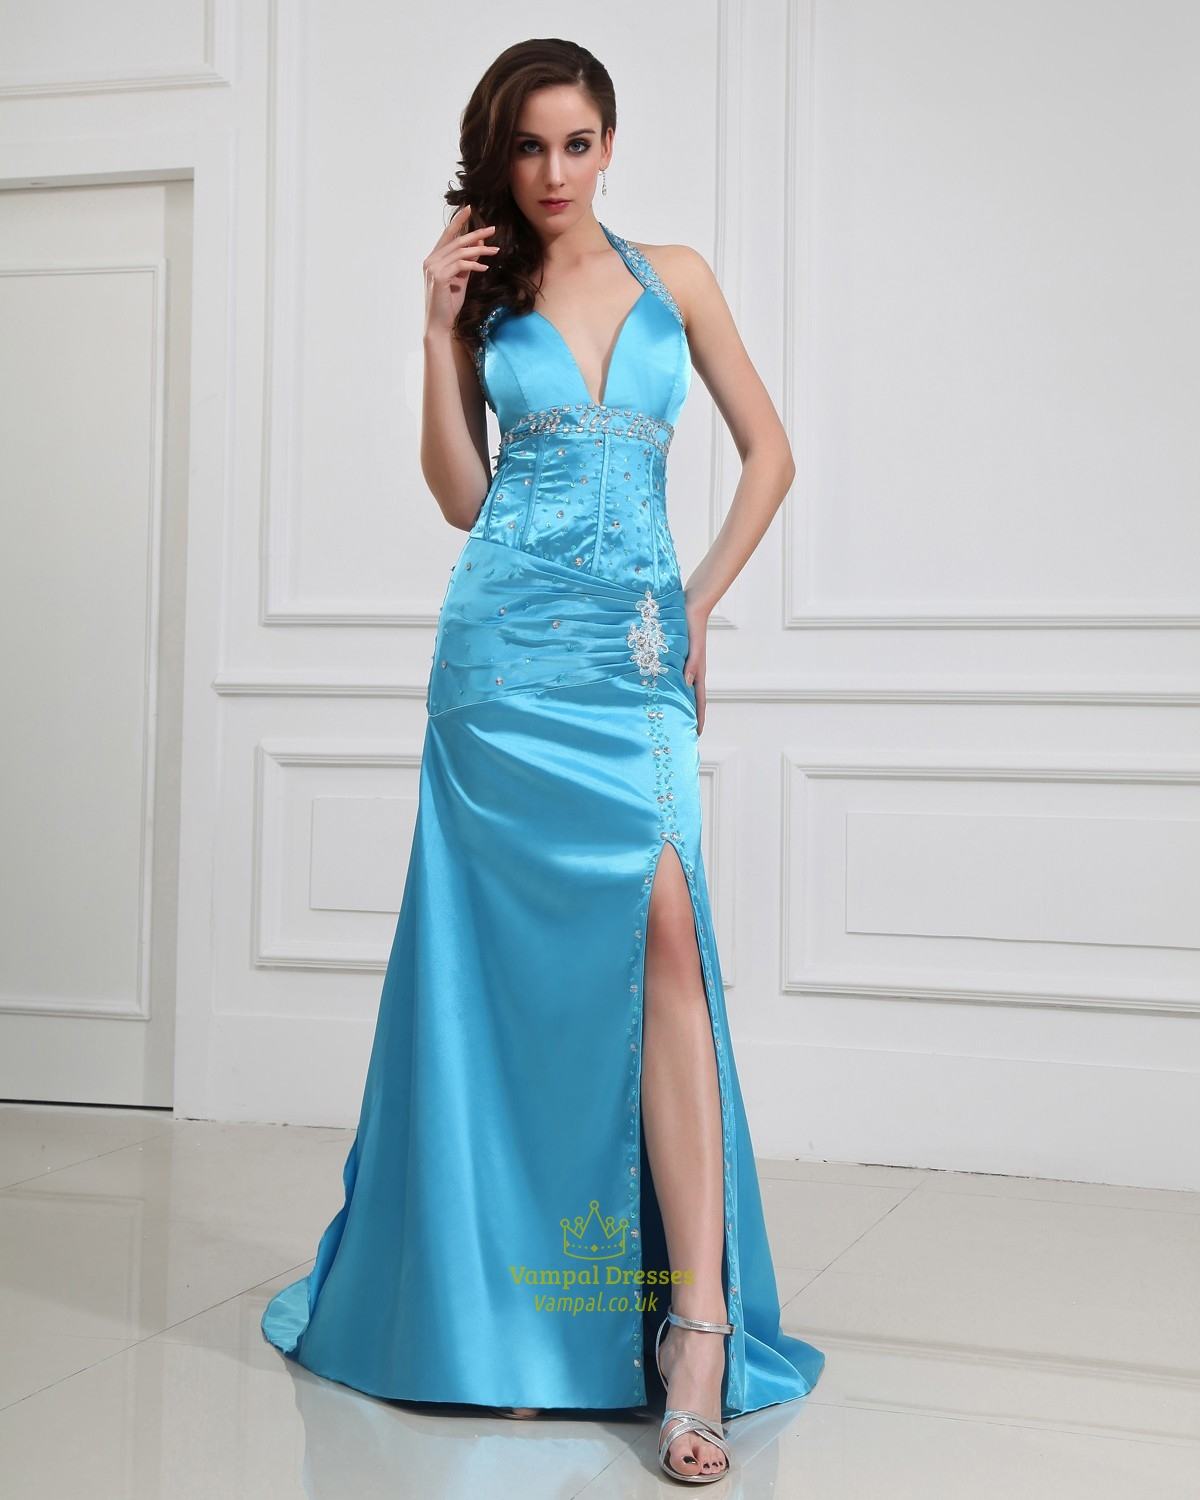 Blue Halter Prom Dresses With Slits Up The Side | Vampal Dresses